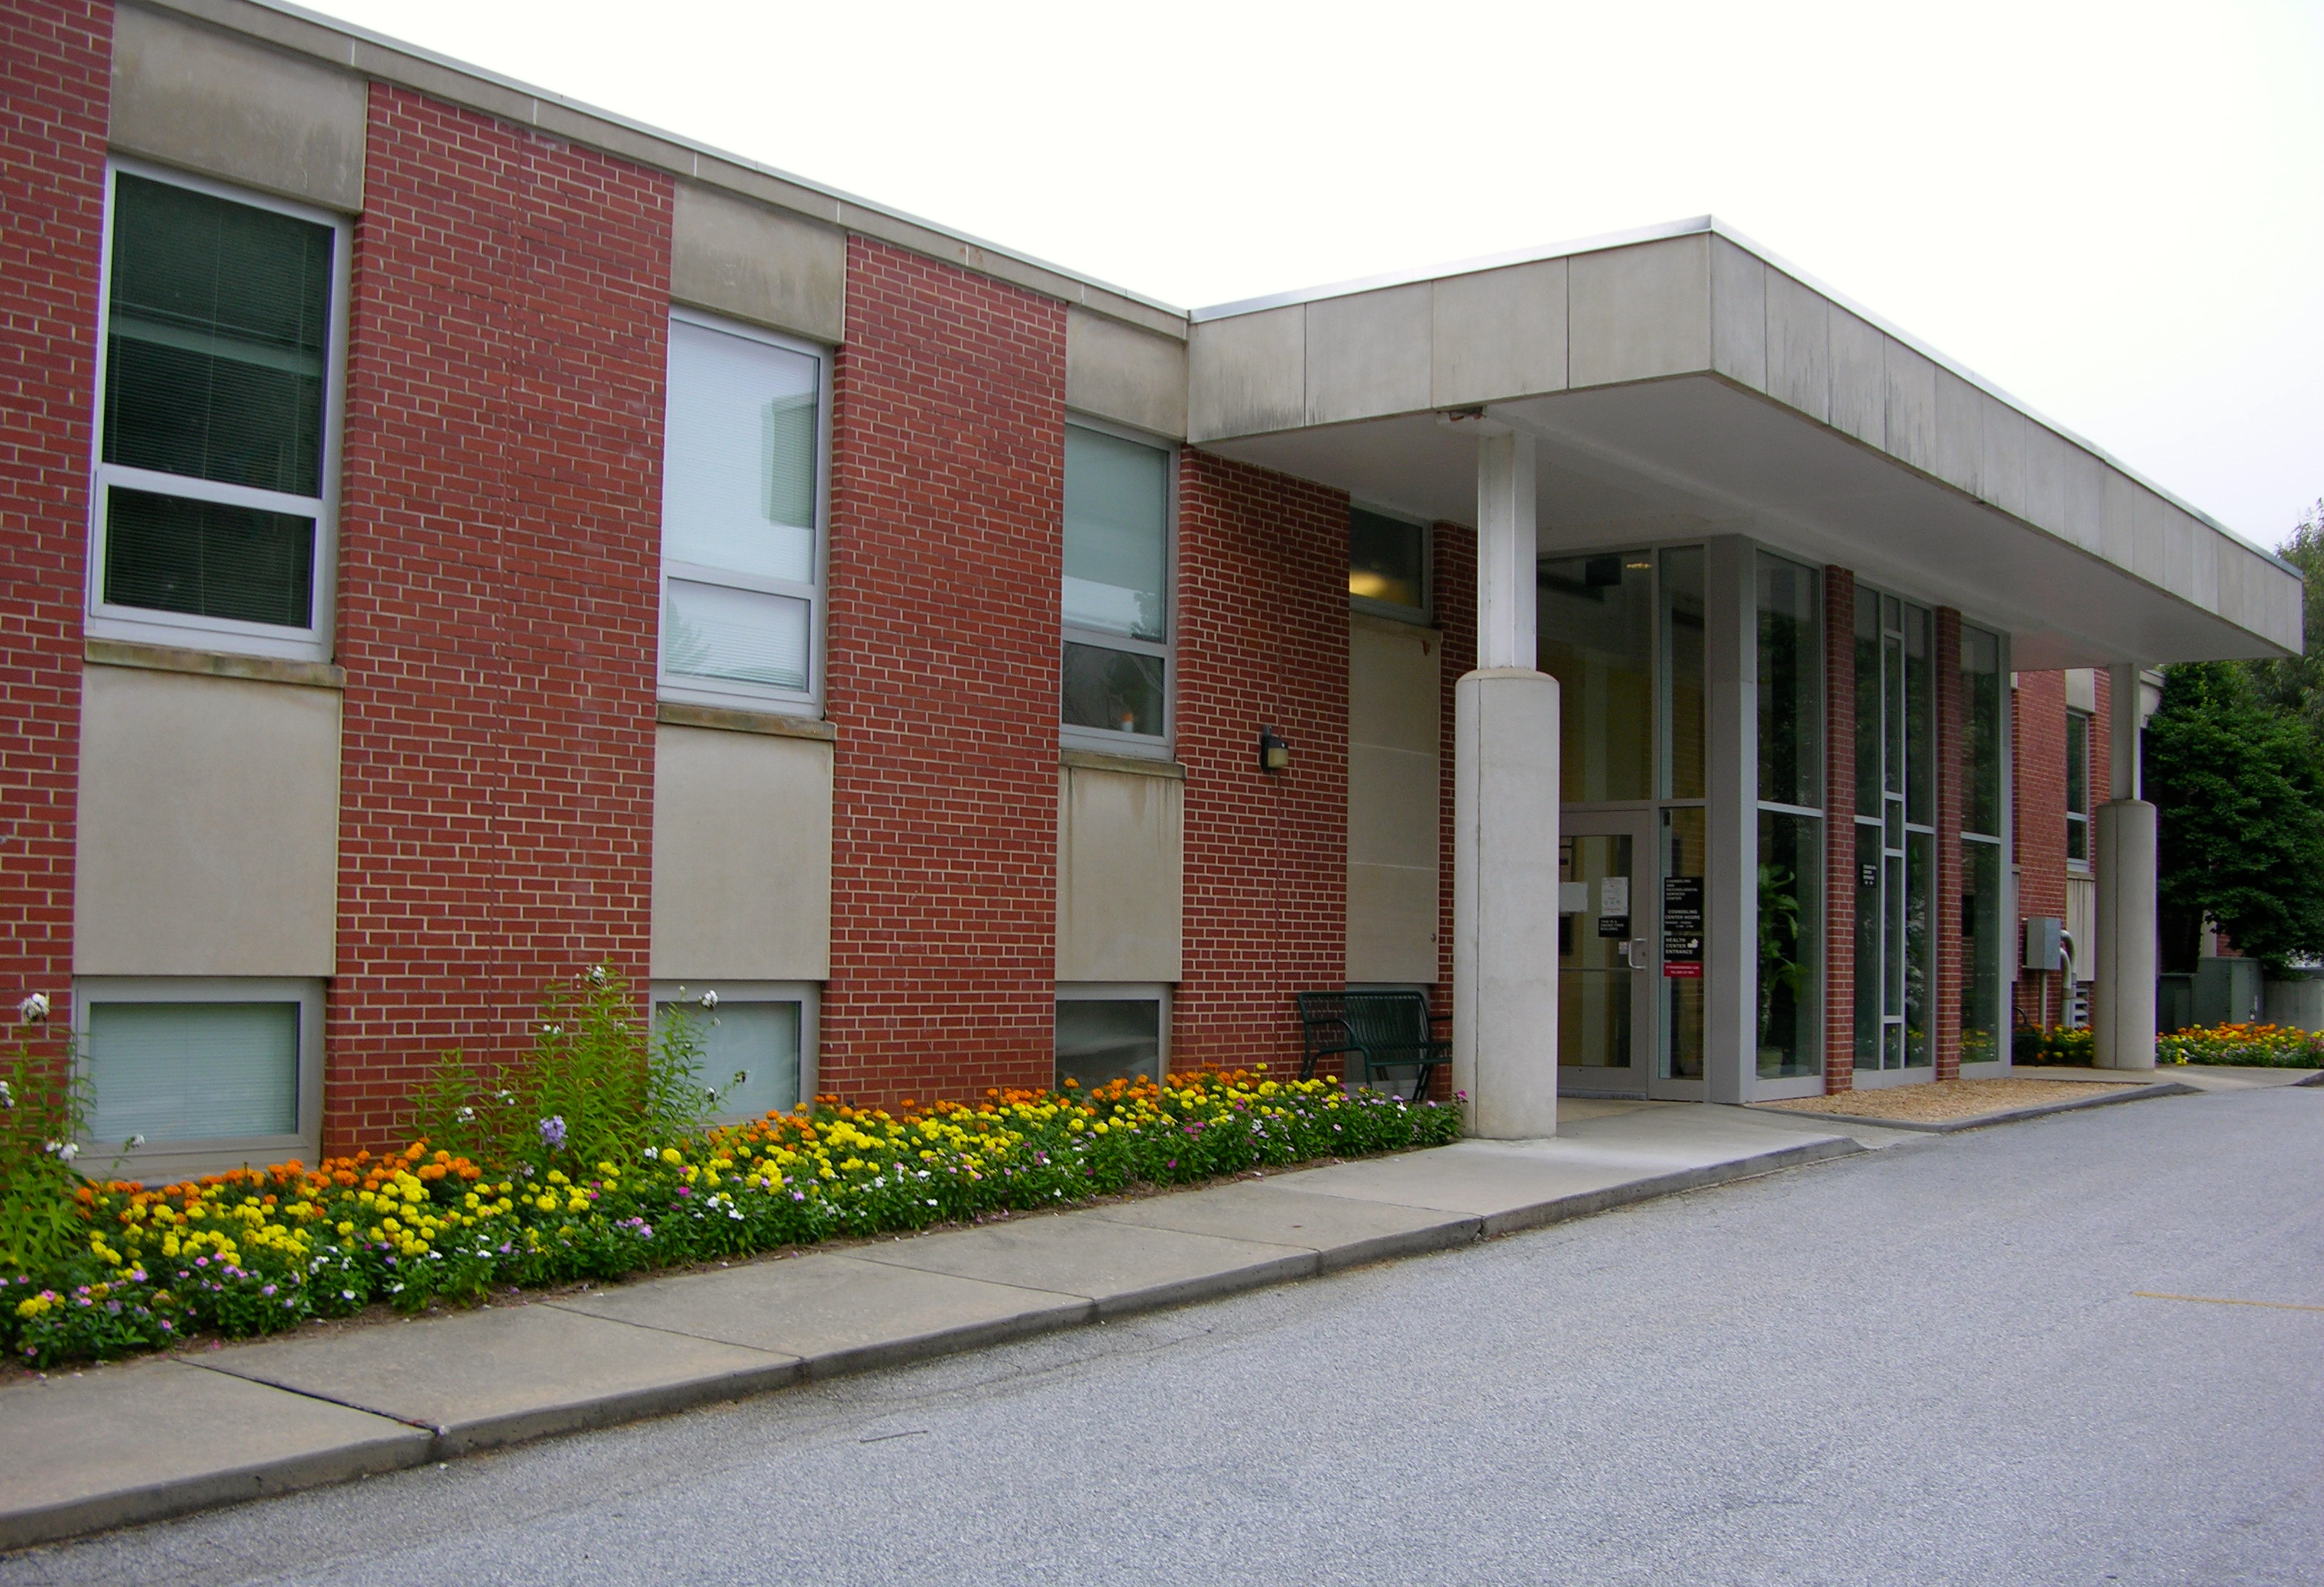 An image of the back of the Health and Wellness building on Campus